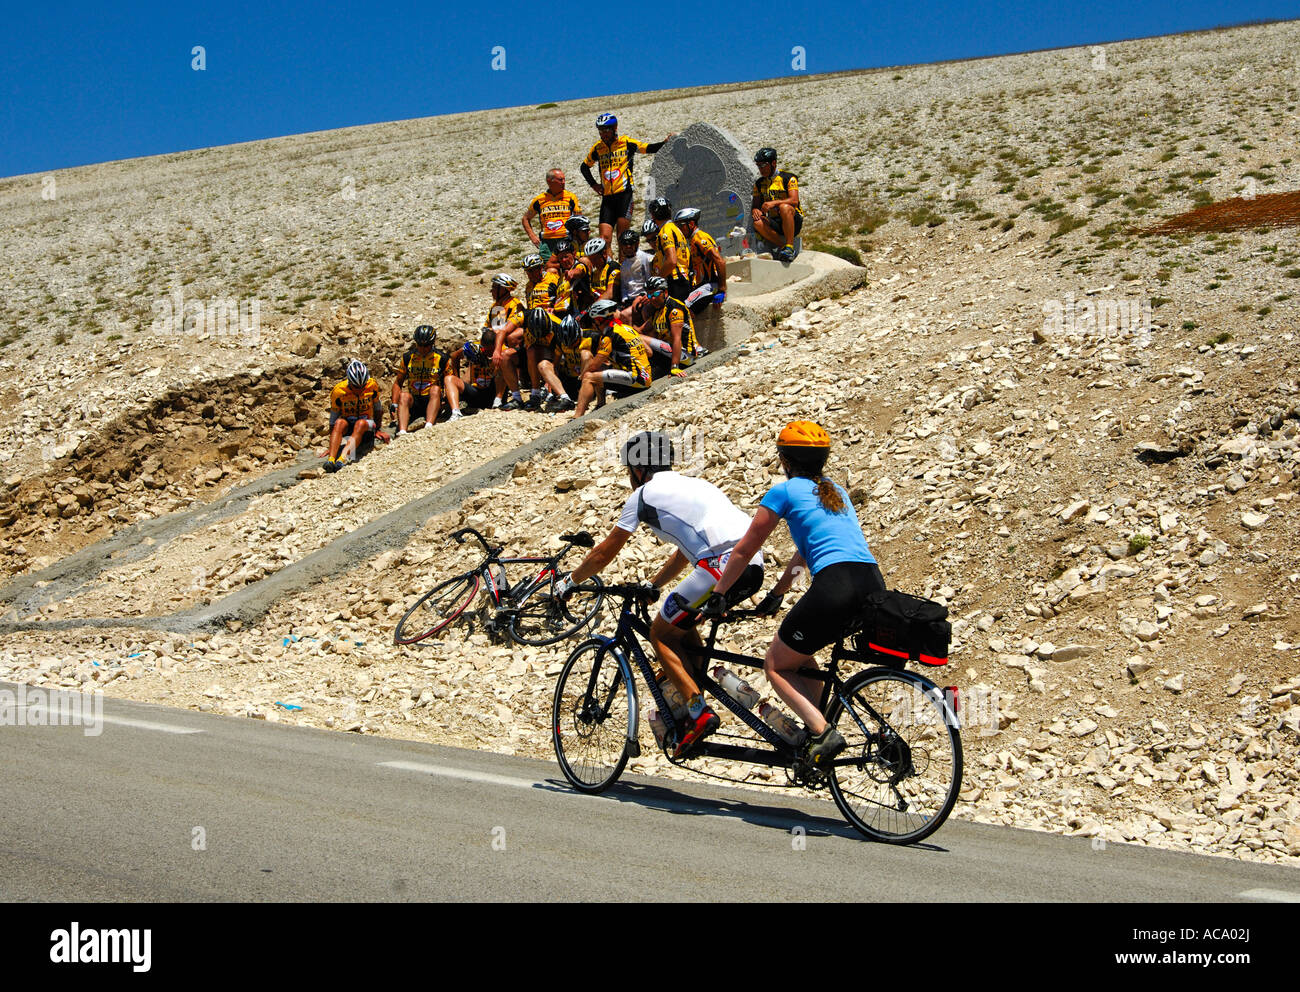 At the memorial to Tom Simpson, first doping fatality at the Tour de France, Mont Ventoux, Provence, France - Stock Image